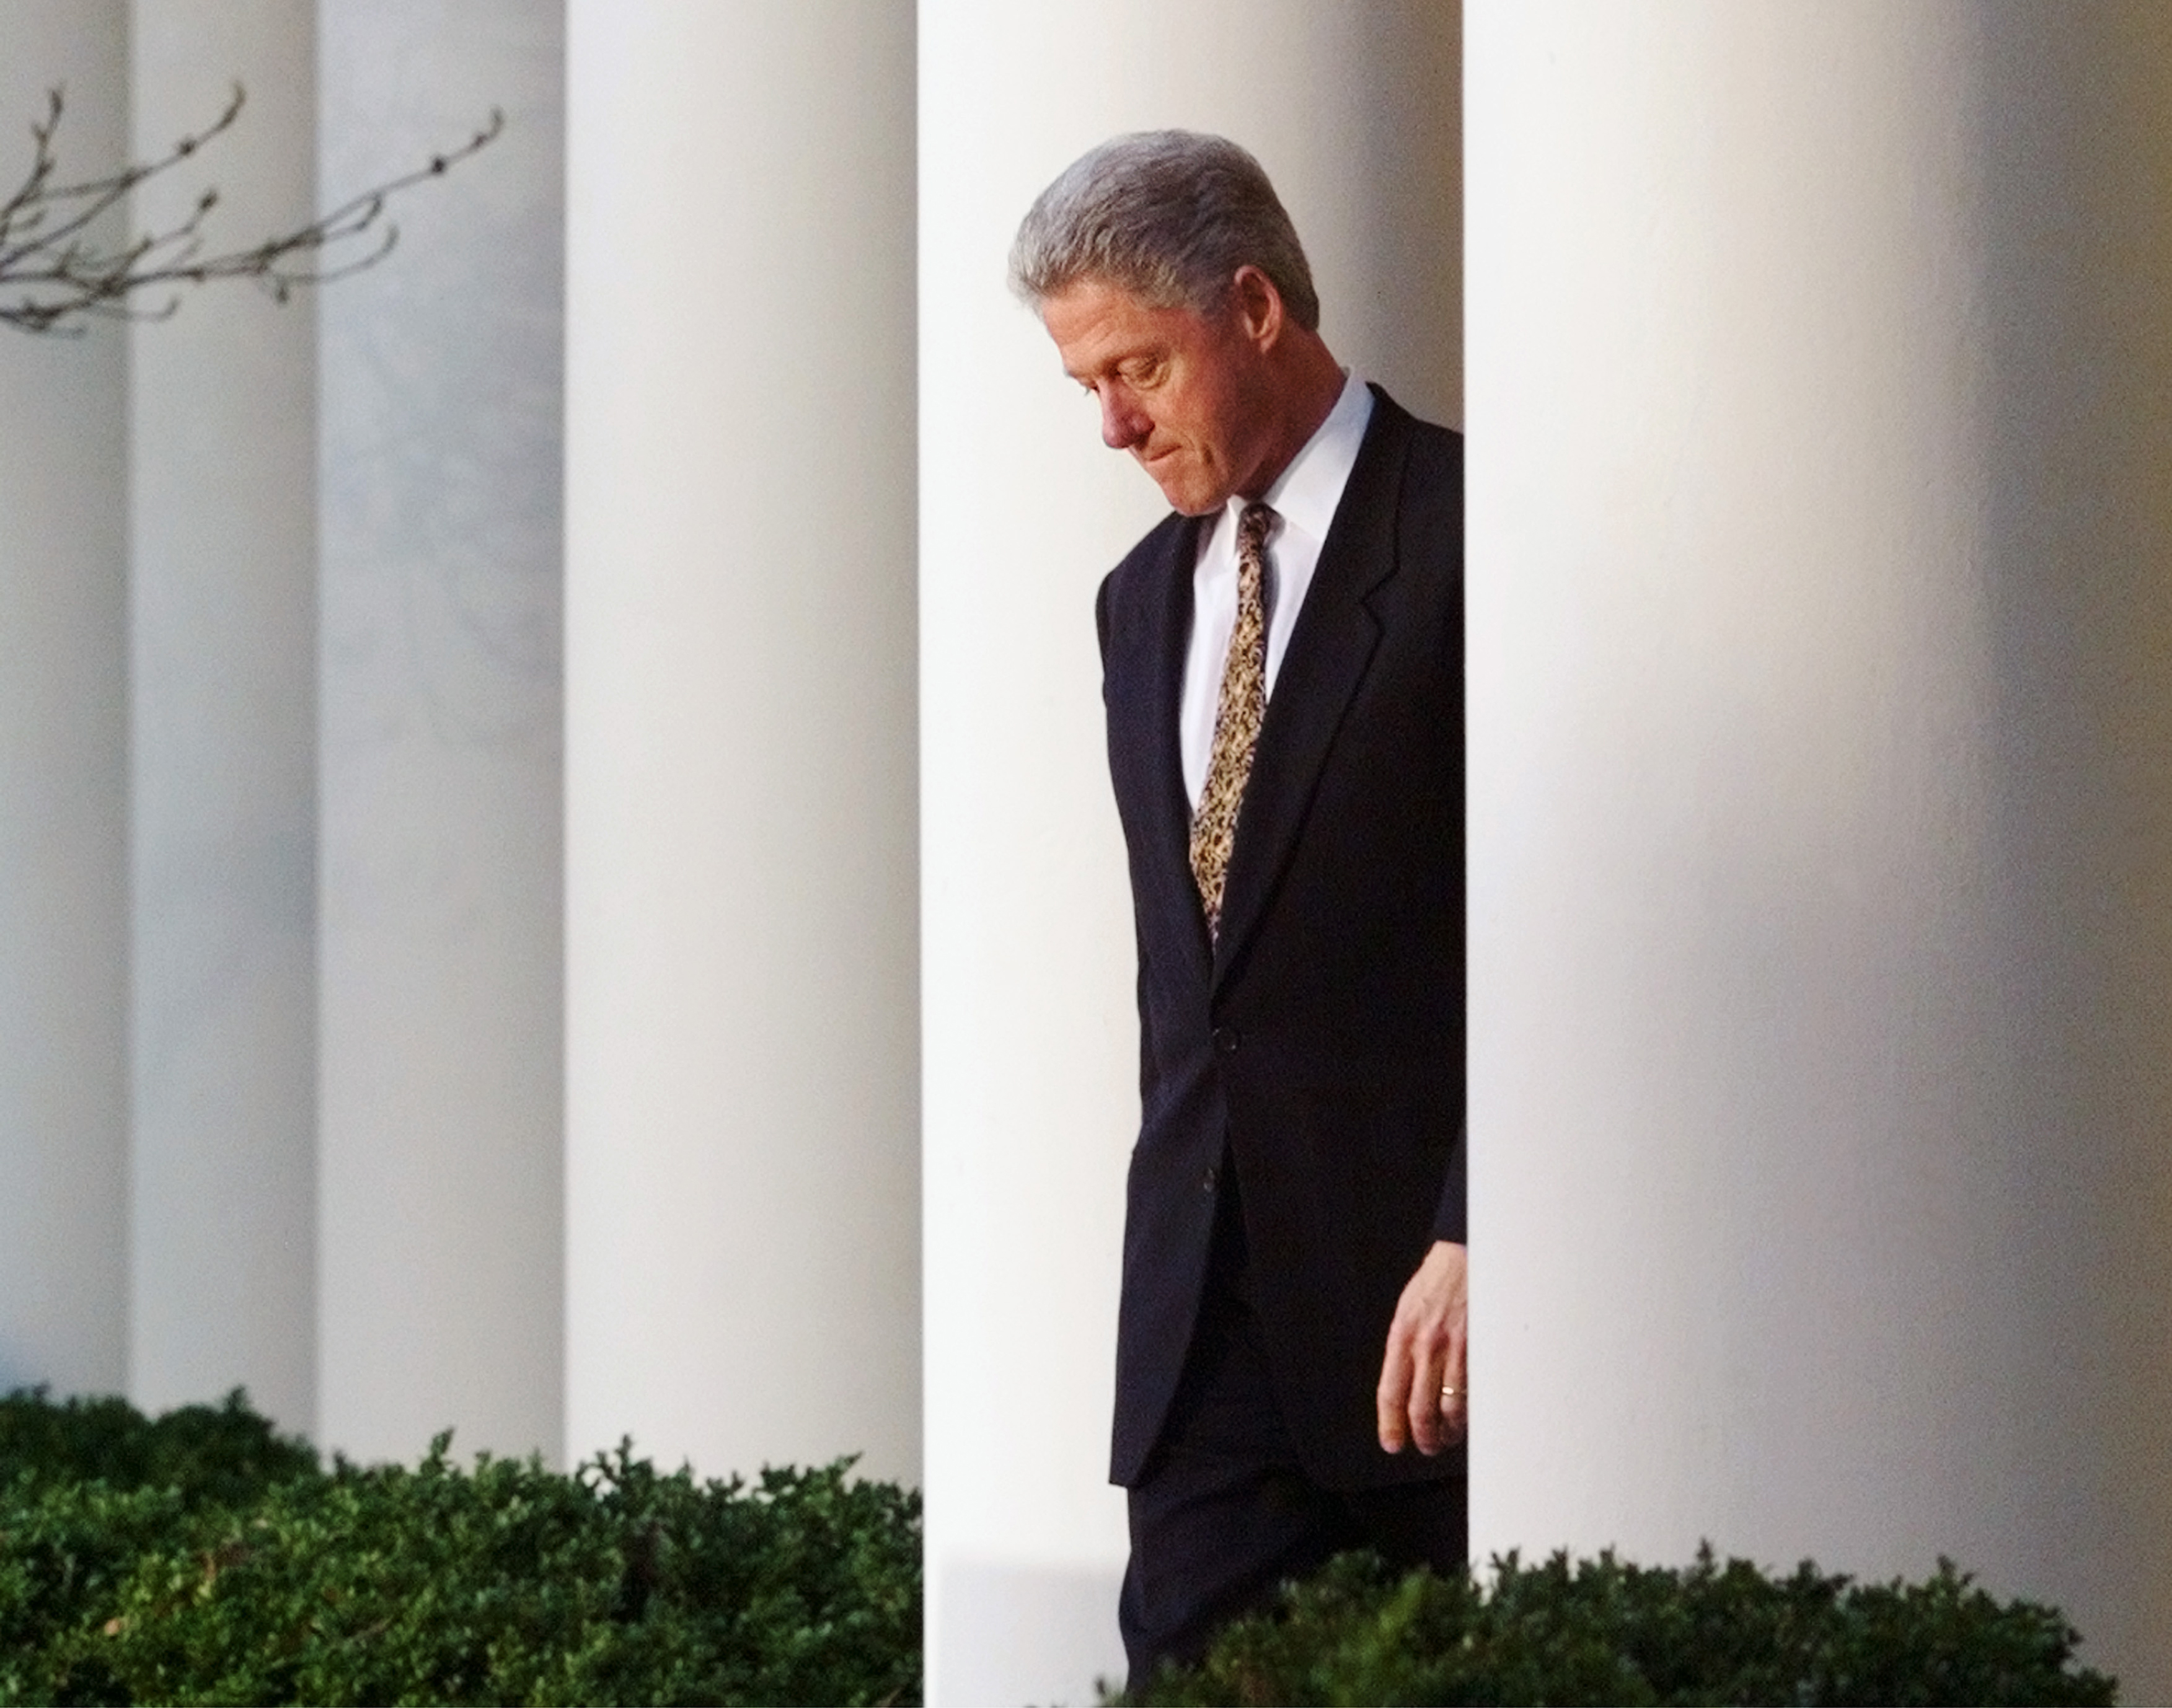 President Clinton walks to the podium in the White House Rose Garden to make a statement on the House impeachment inquiry on Dec. 11, 1998. The president apologized to the country for his conduct and offered to accept congressional censure. (AP Photo/J. Scott Applewhite)